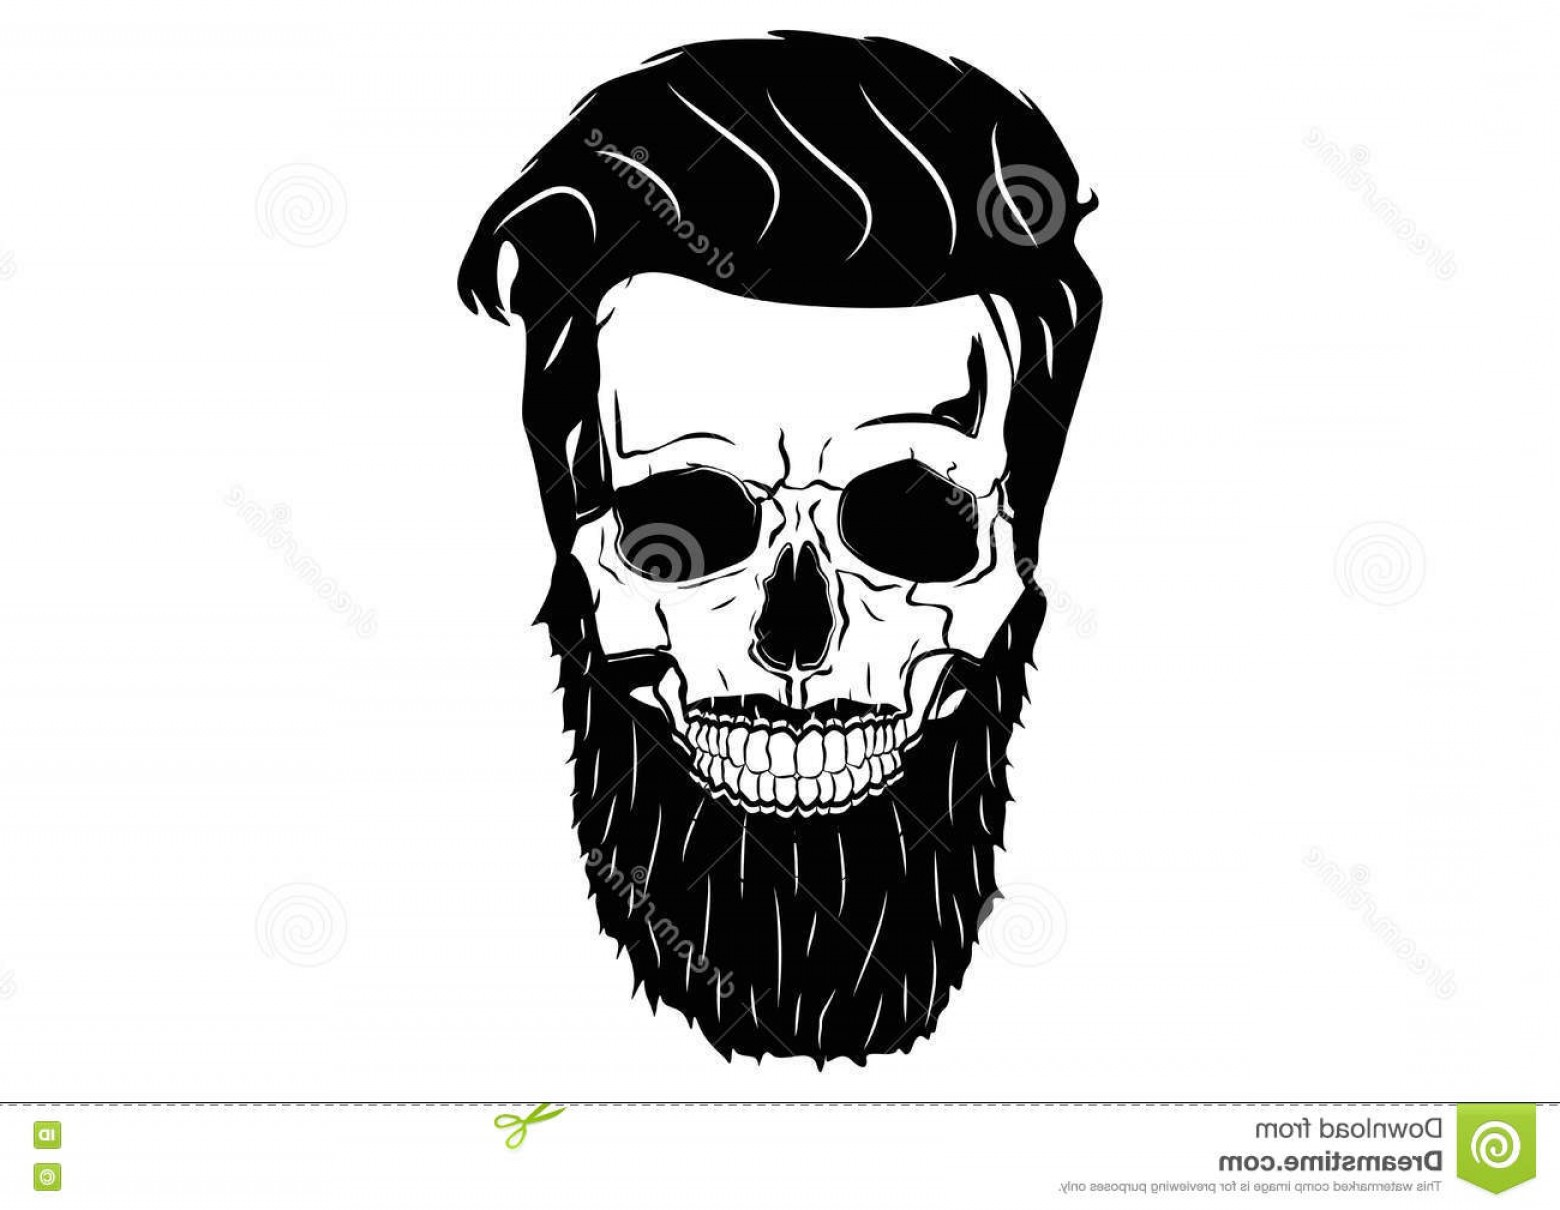 Fear The Beard Vector: Stock Illustration Illustration Vector Graphic Skull Pirate Hipster Creative Use Design Image